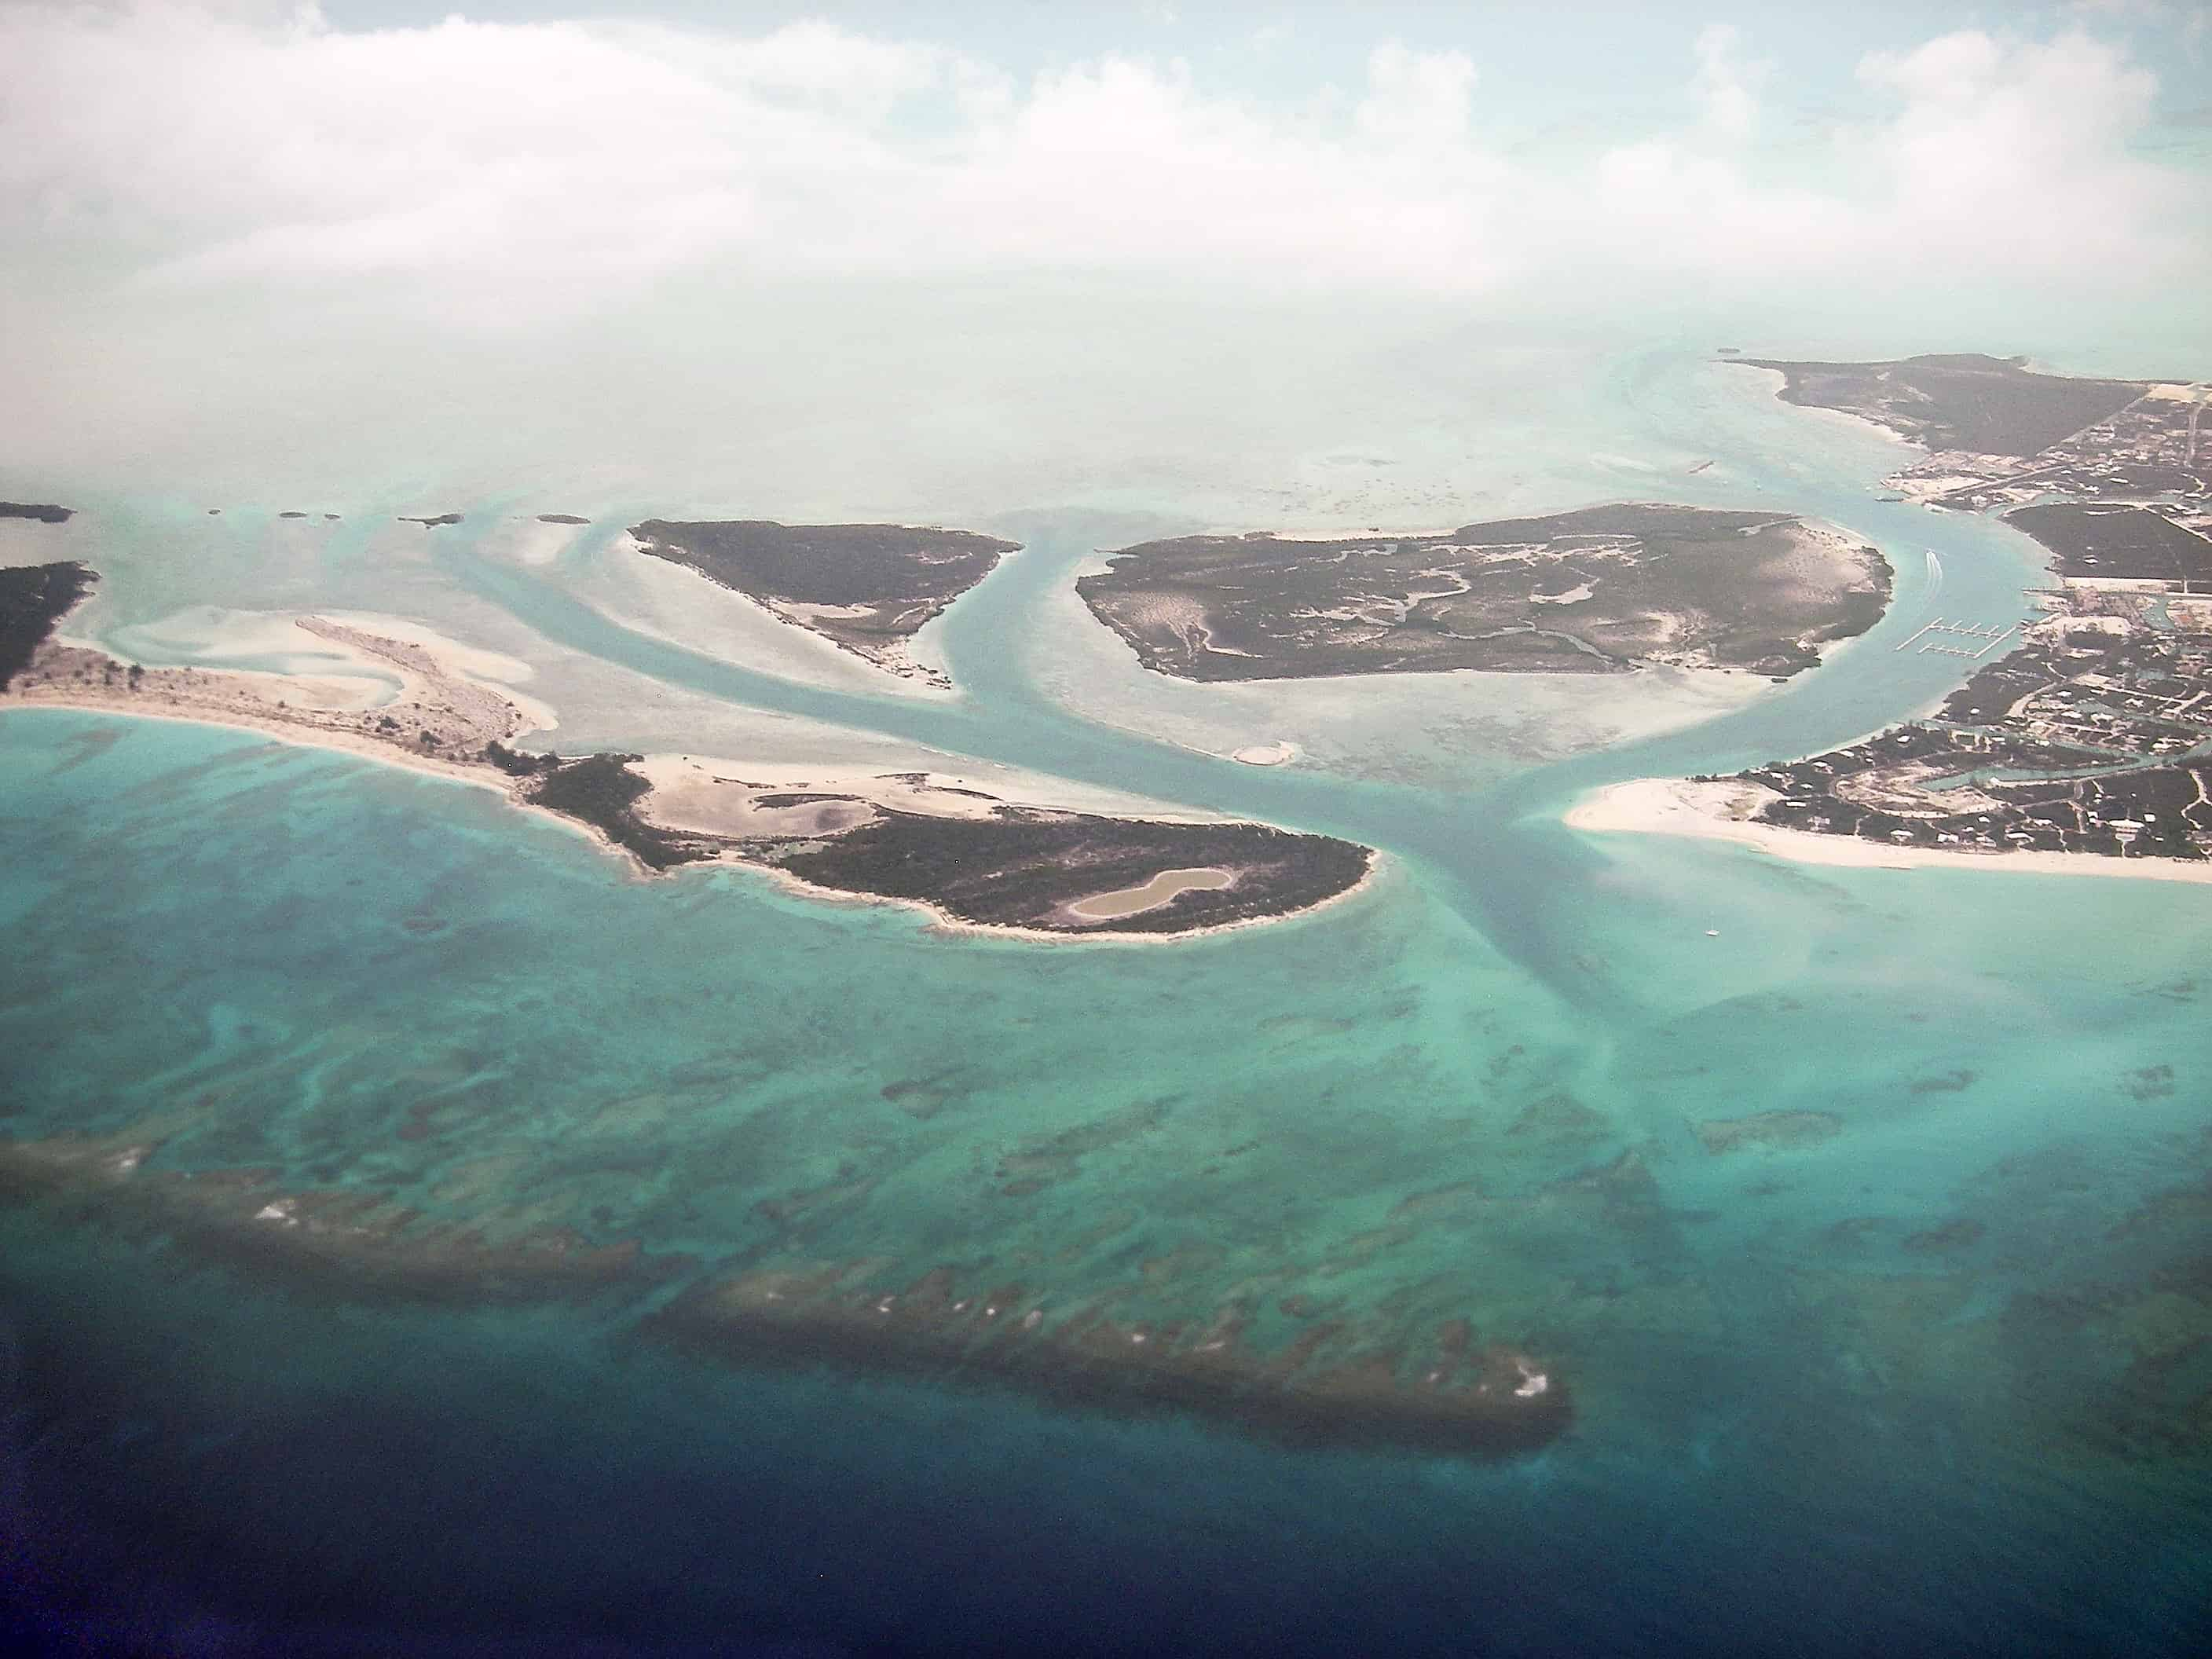 Water, Little Water, Donna and Mangrove Cays, the Leeward Wideopens Channel and fringing reef off the eastern end of Providenciales (to right). Copyright: Dr Mike Pienkowski